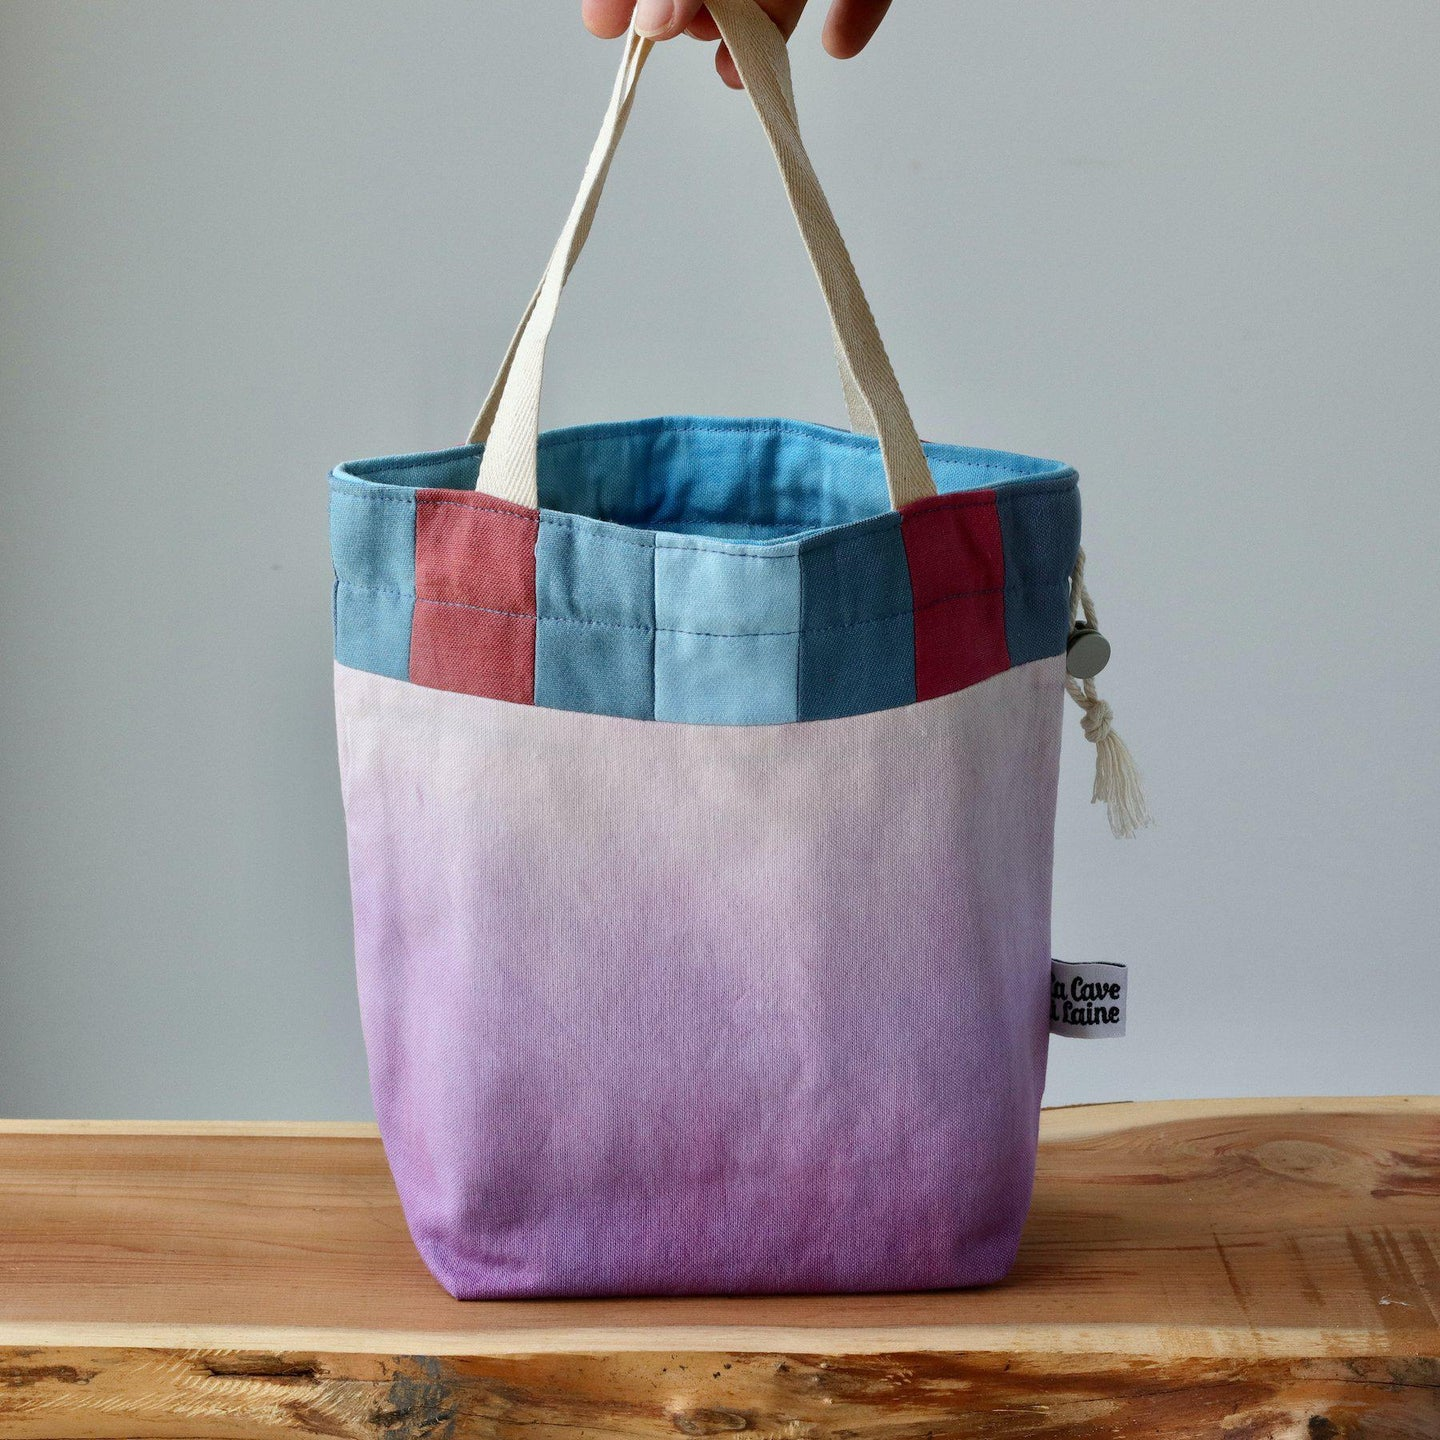 Aquarelle Project Bag - Hand-Dyed Organic Cotton, Bicolour: Multicolore e Viola-La Cave à Laine